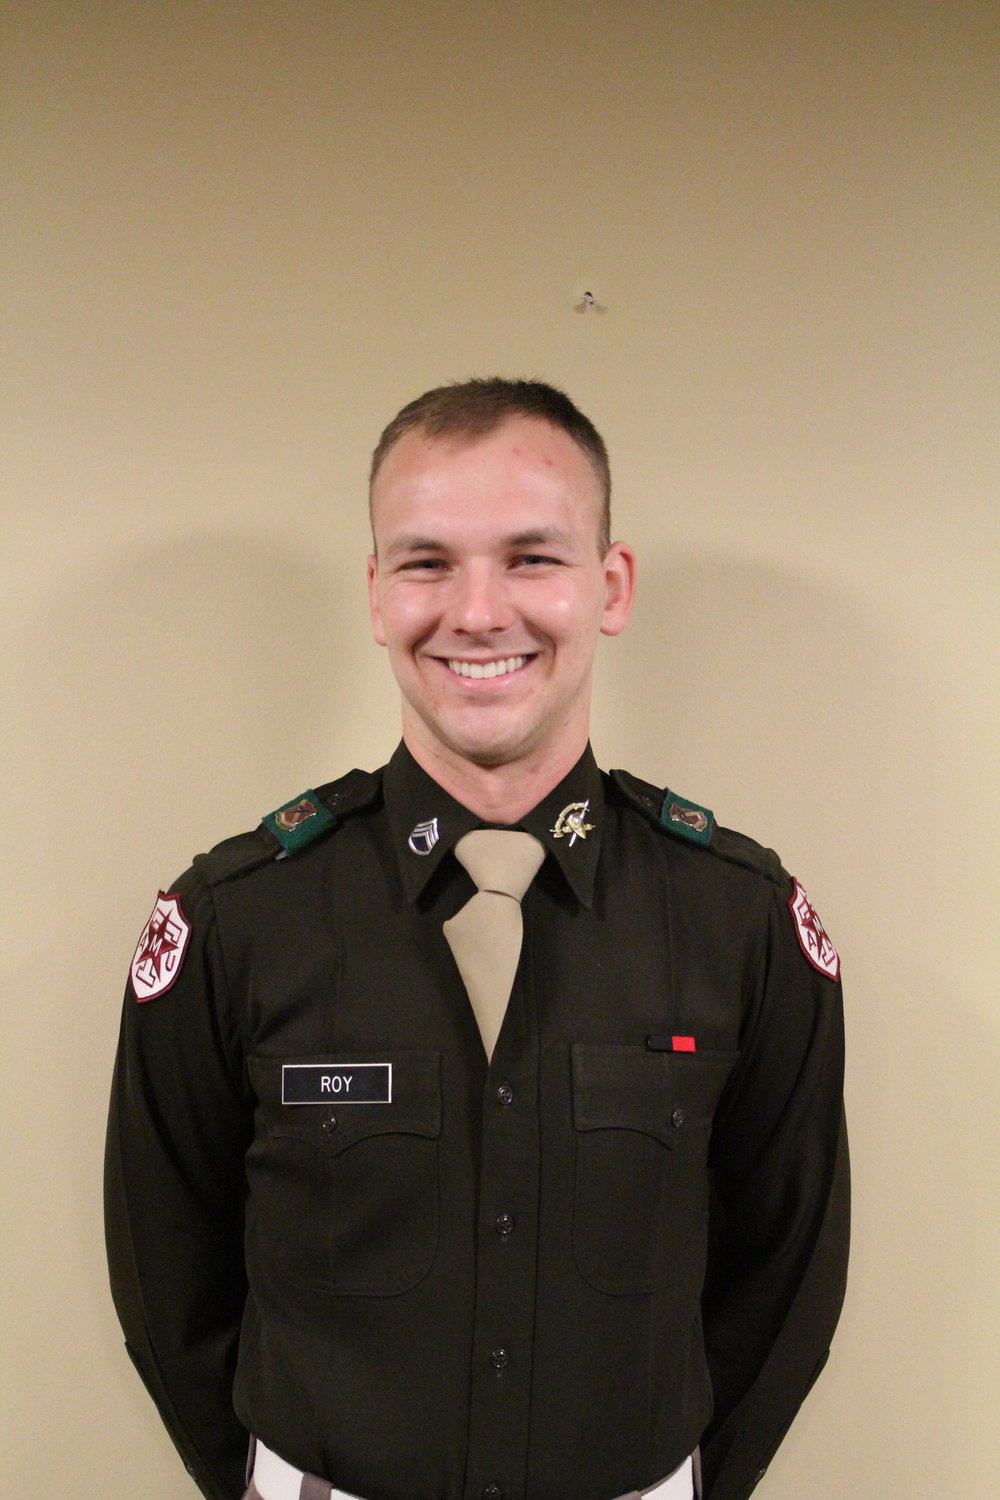 """Nicholas Roy '17    Hometown: Arlington, TX   Major: Agriculture Business   Involvement:  TAMU CFFA Corp of Cadets   Favorite Quote:  """" Those who labour in the earth are the chosen people of God..."""" Thomas Jefferson, Notes On Virginia (1785)"""